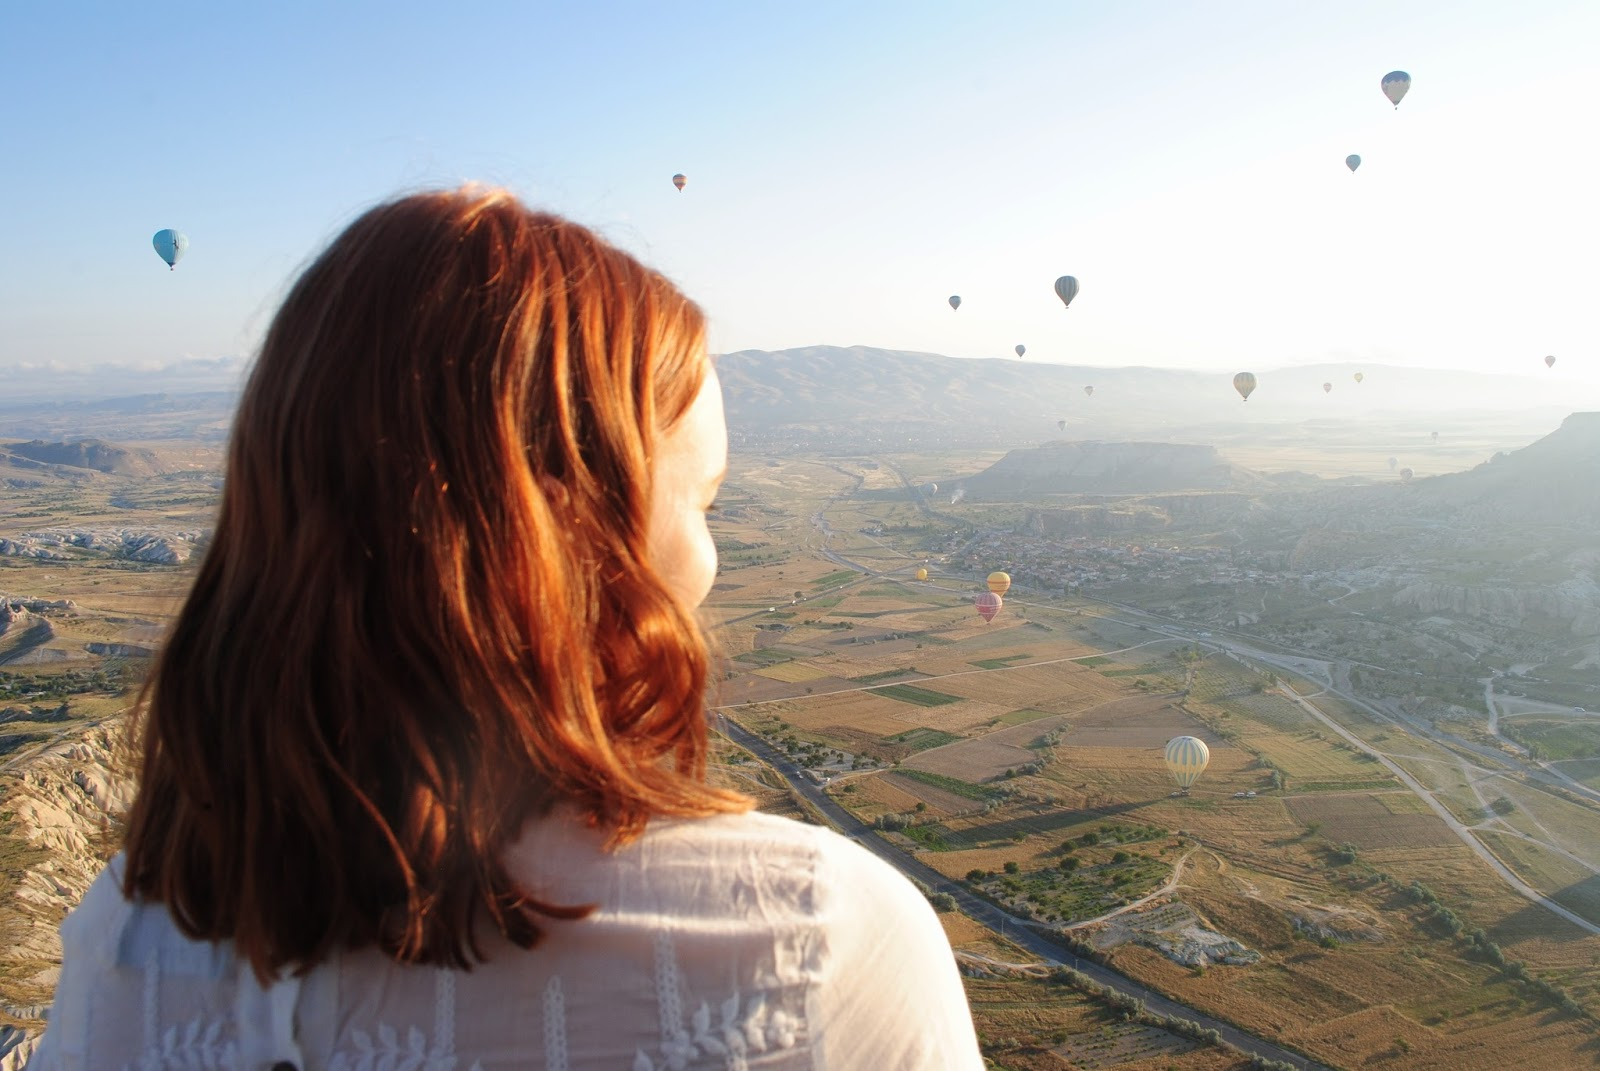 Hot Air Ballooning over Cappadocia in Turkey